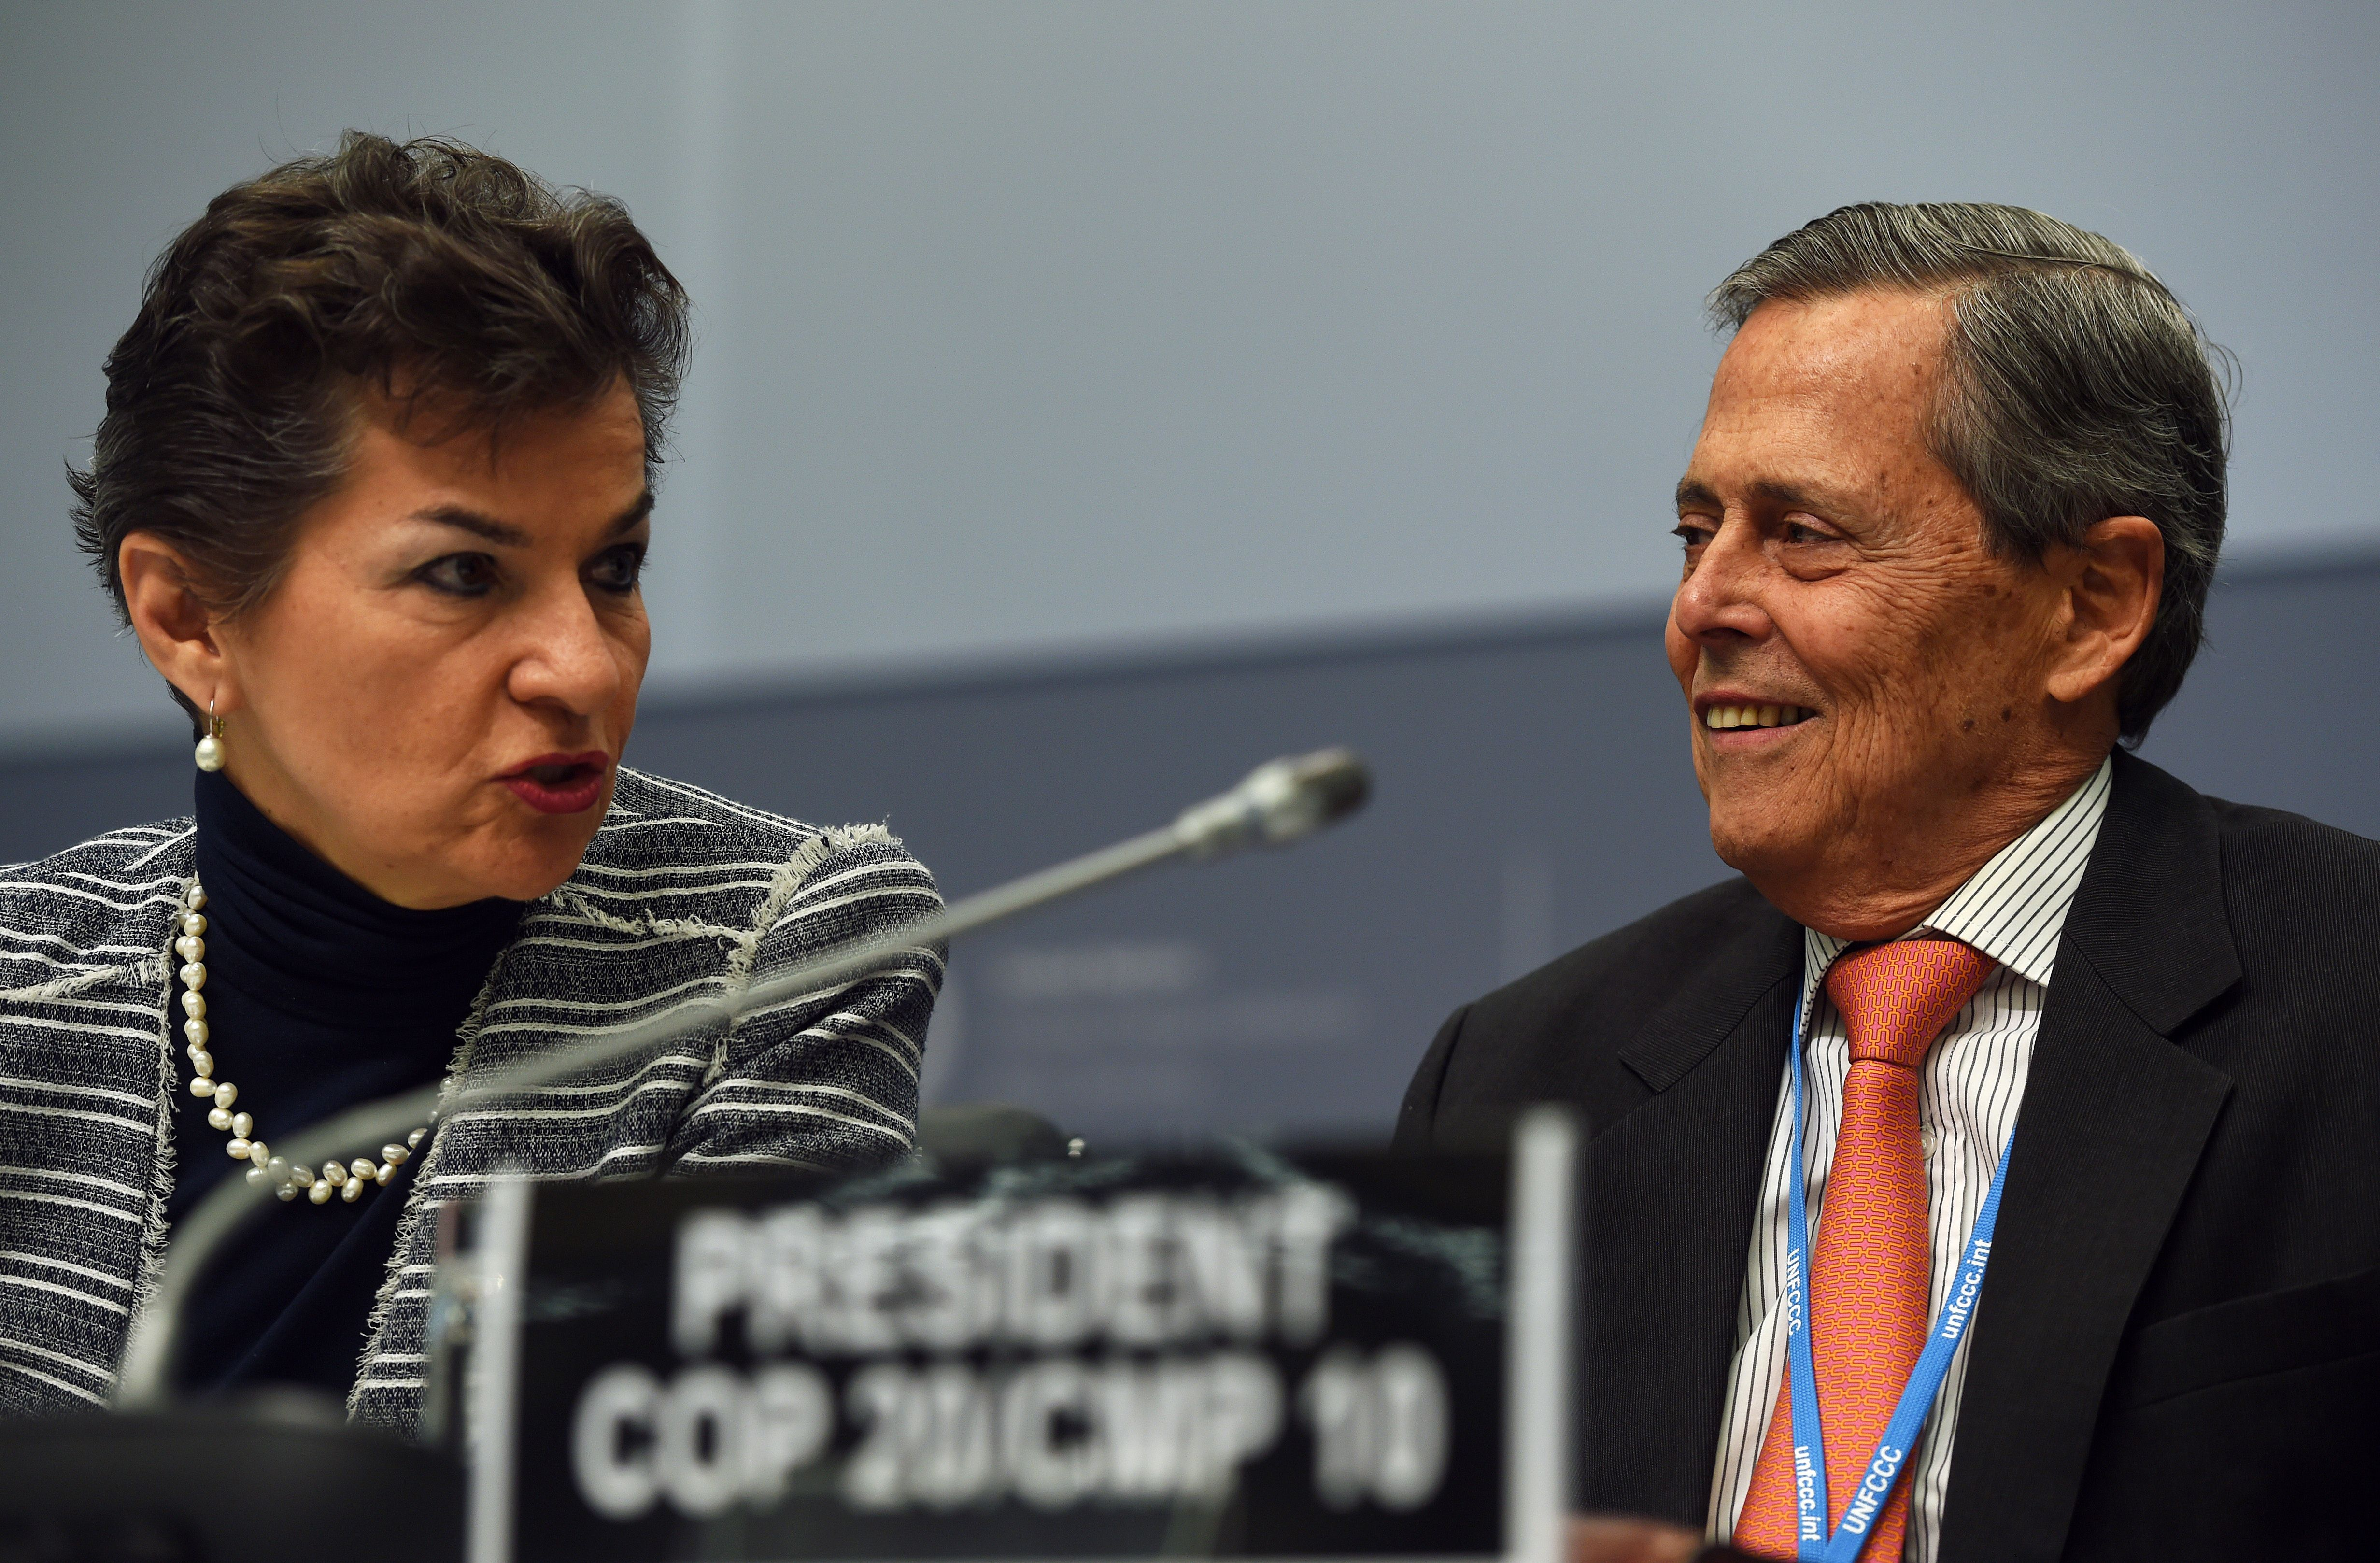 Special Representative of Peru for Climate Change, Jorge Voto Bernales (right), and Executive Secretary of the United Nations Framework Convention on Climate Change (UNFCCC), Christiana Figueres, during the UNFCCC opening ceremony in Bonn, Germany, on June 1, 2015.